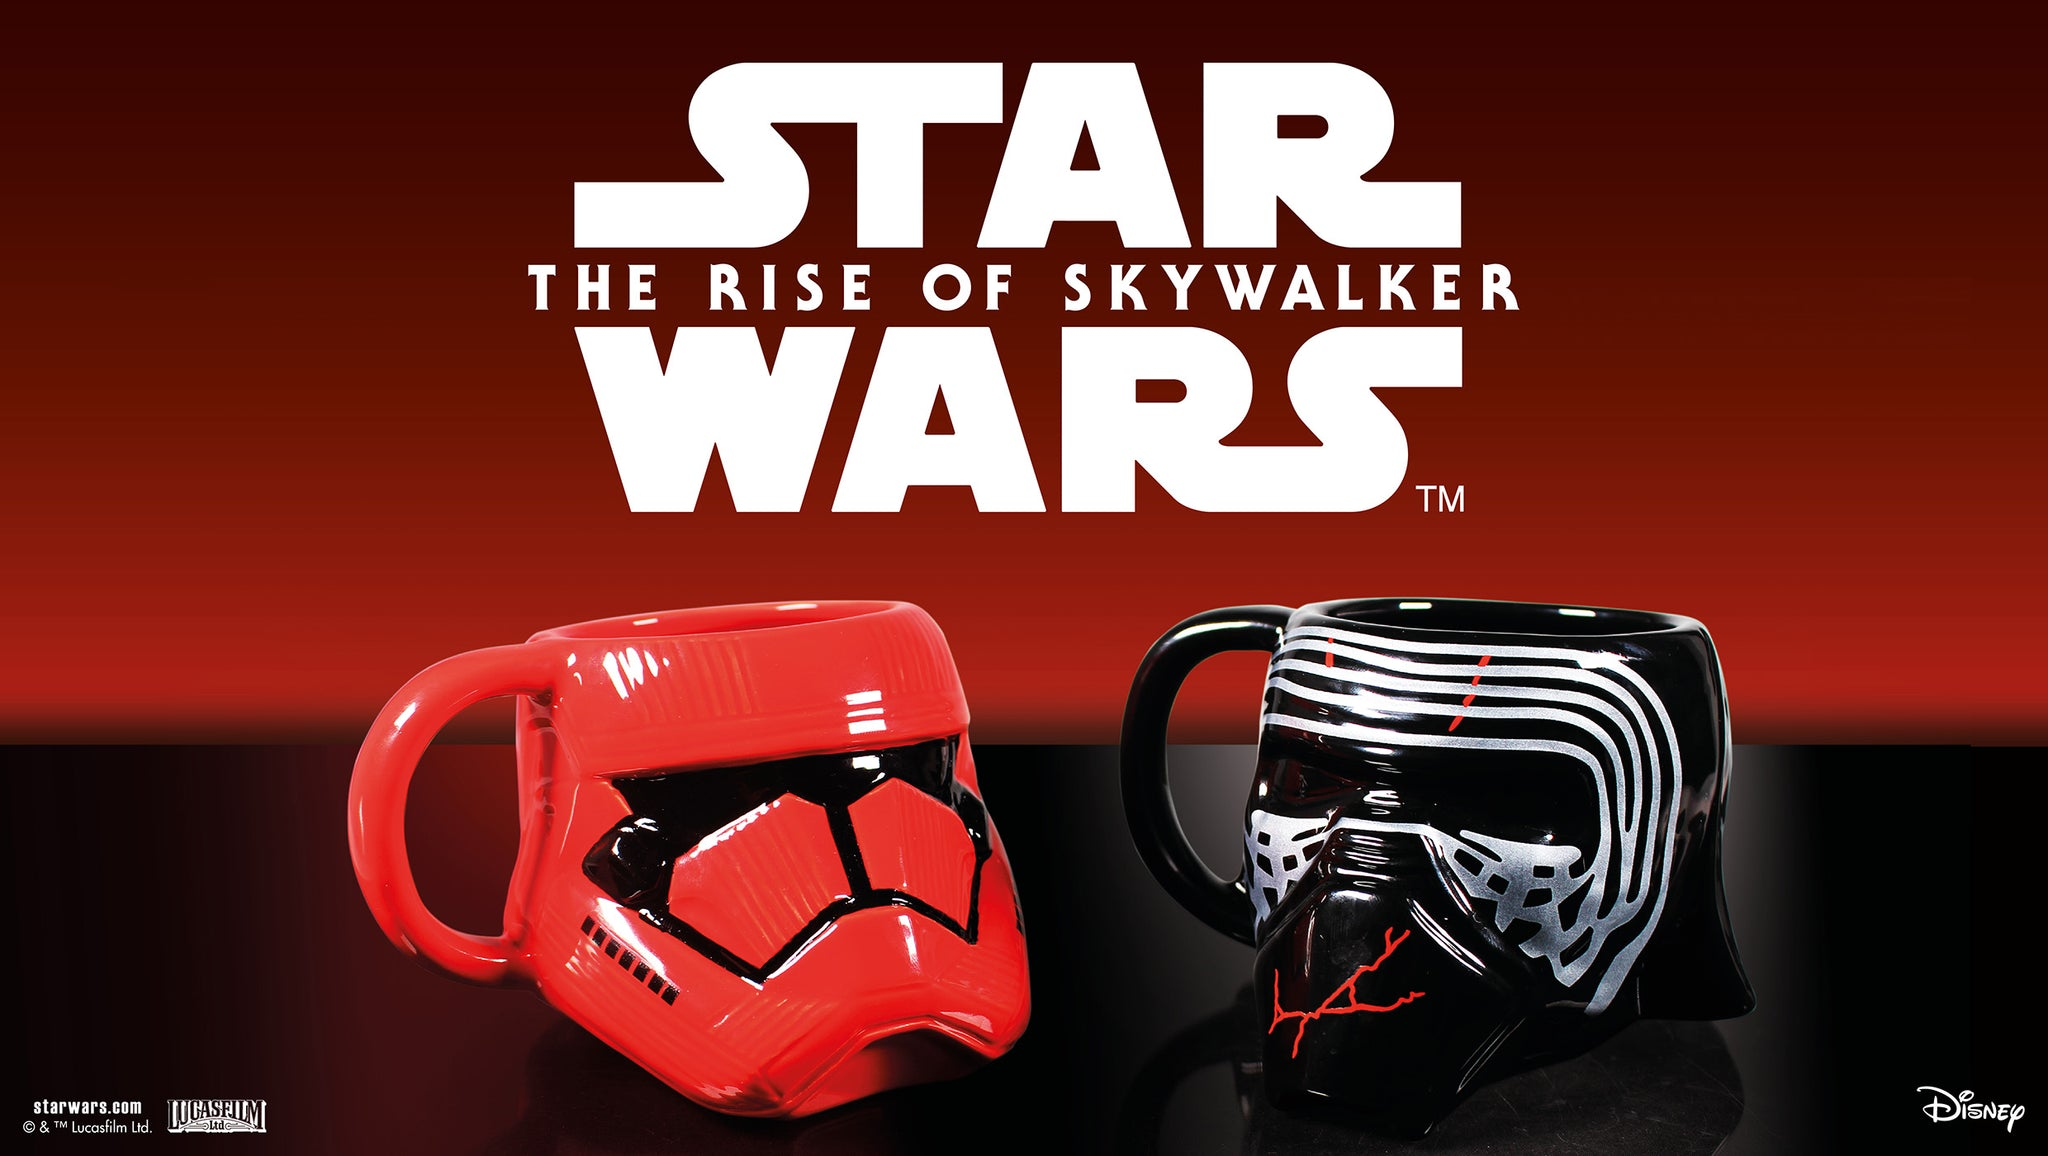 Half Moon Bay's Star Wars: The Rise of Skywalker Products Revealed!